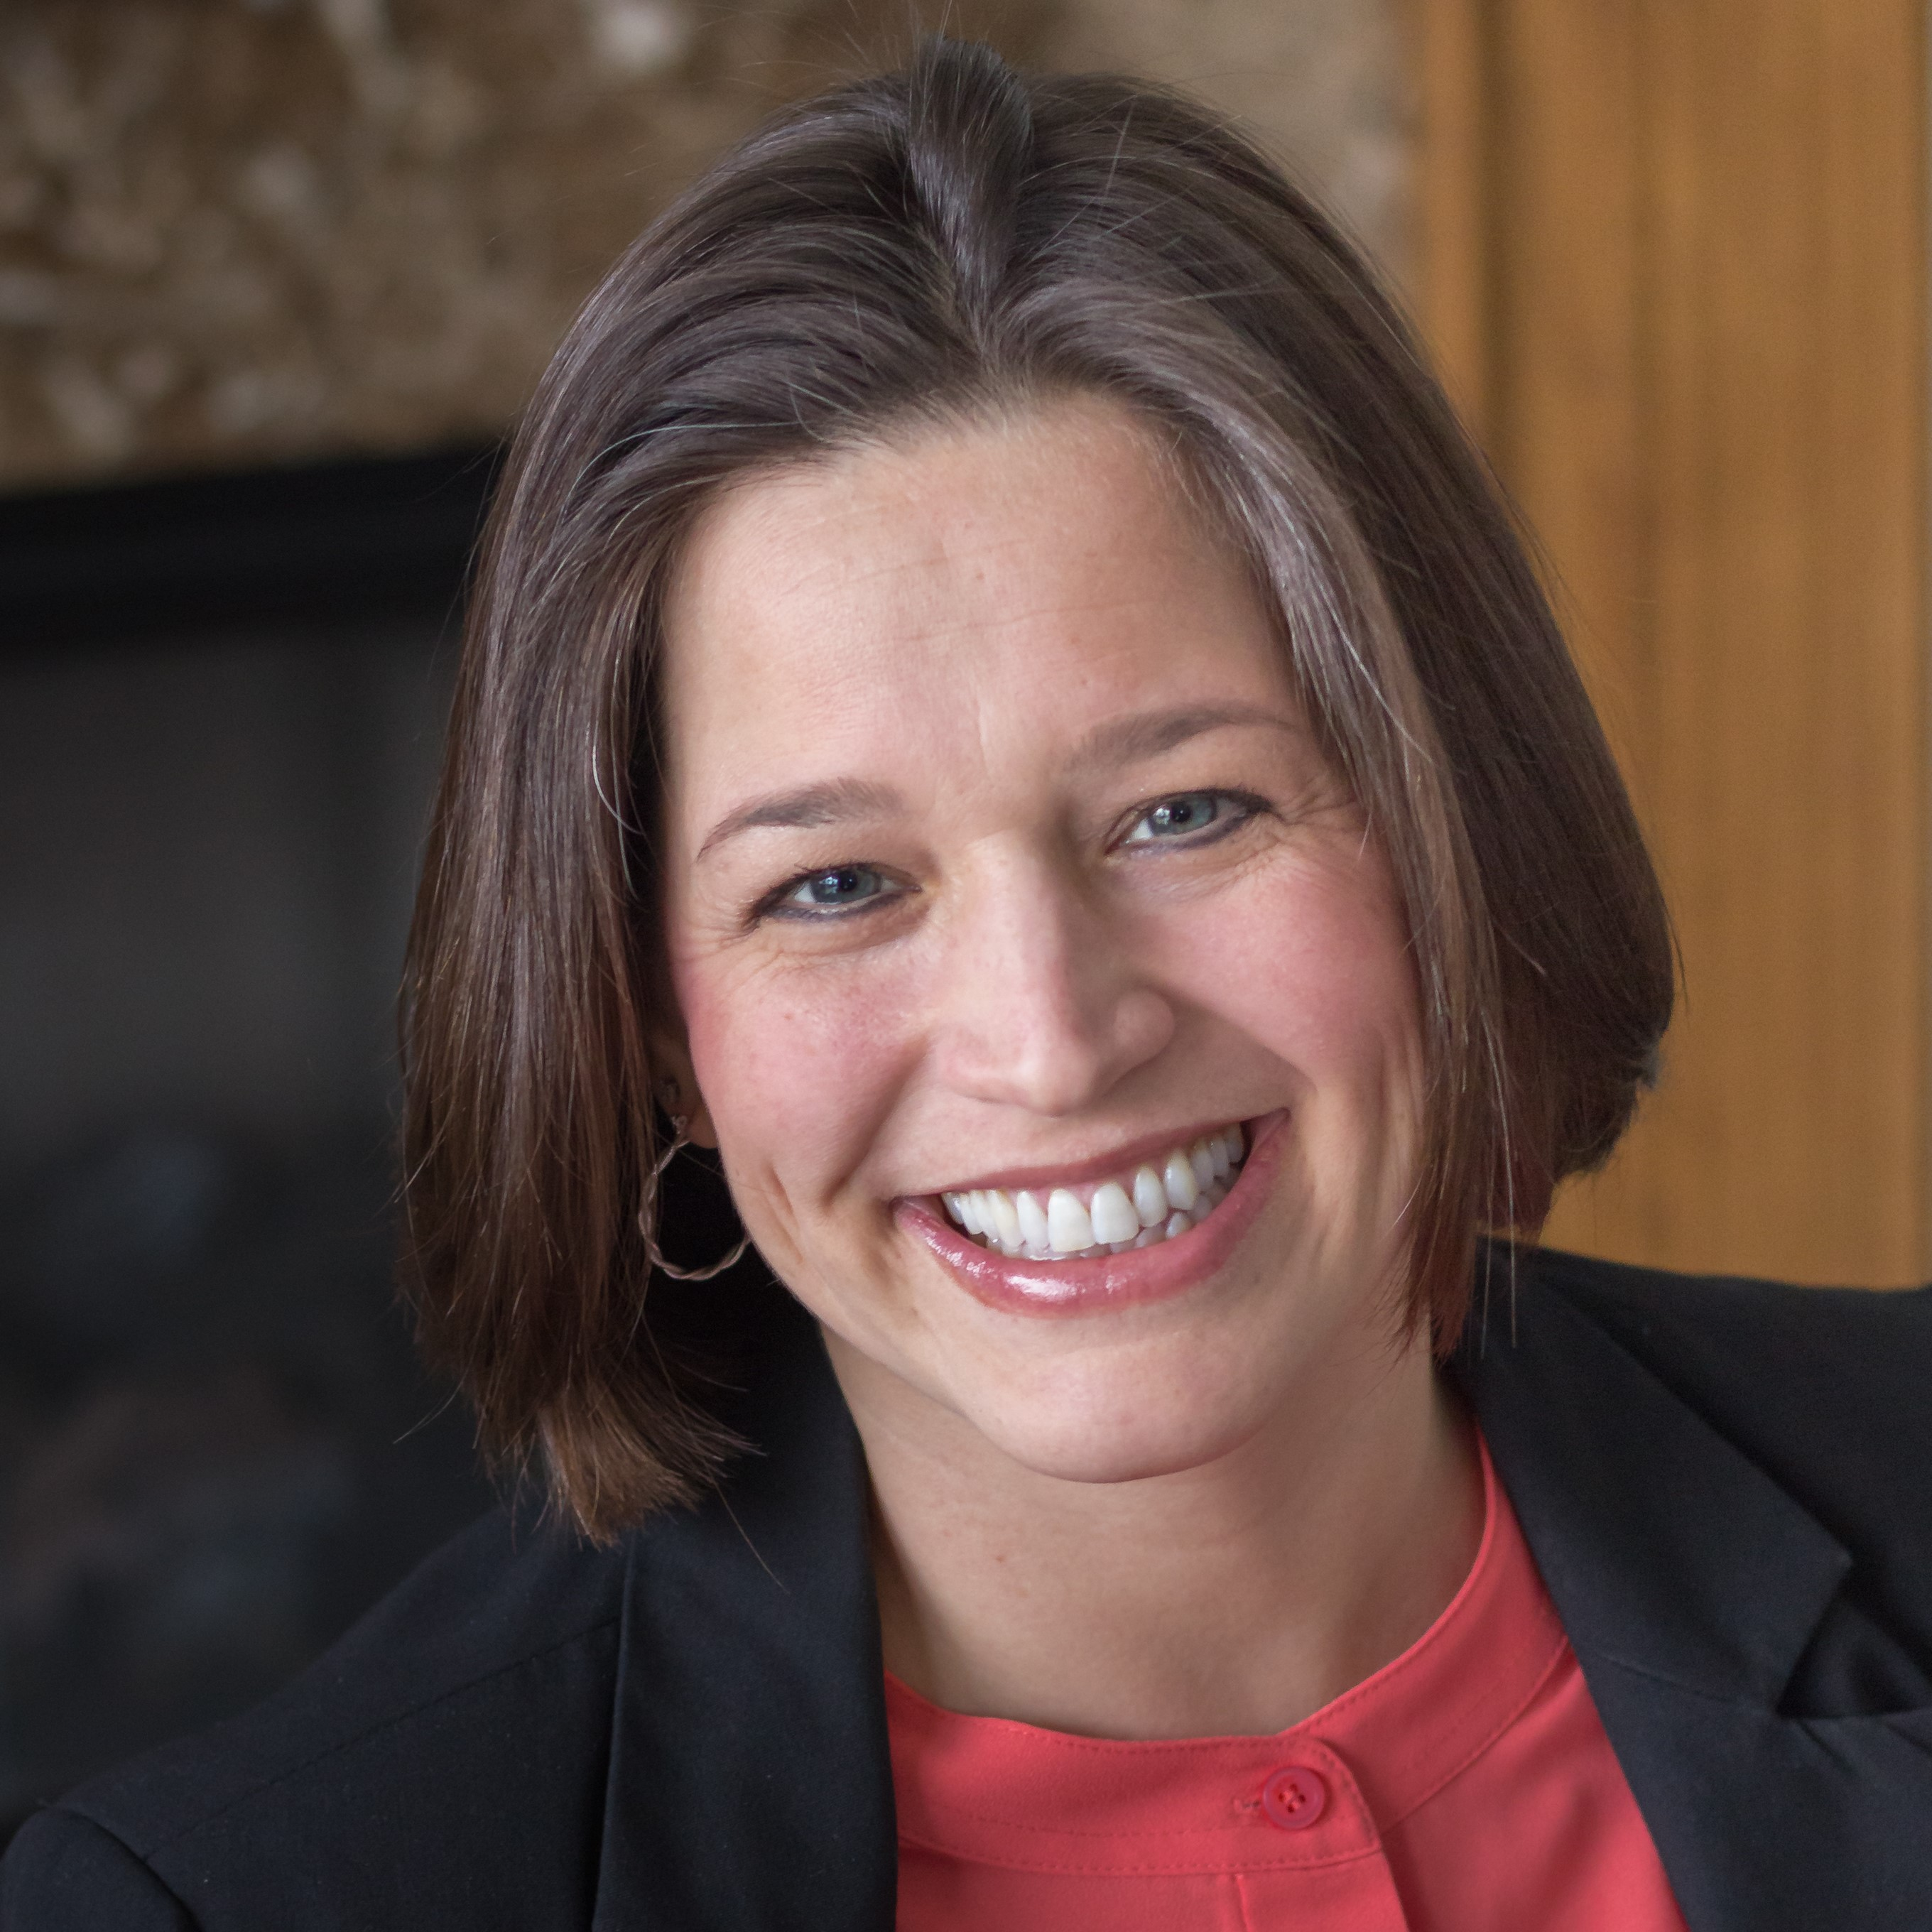 Conference Speaker Highlight: IEP for Student Success Katy Chambers